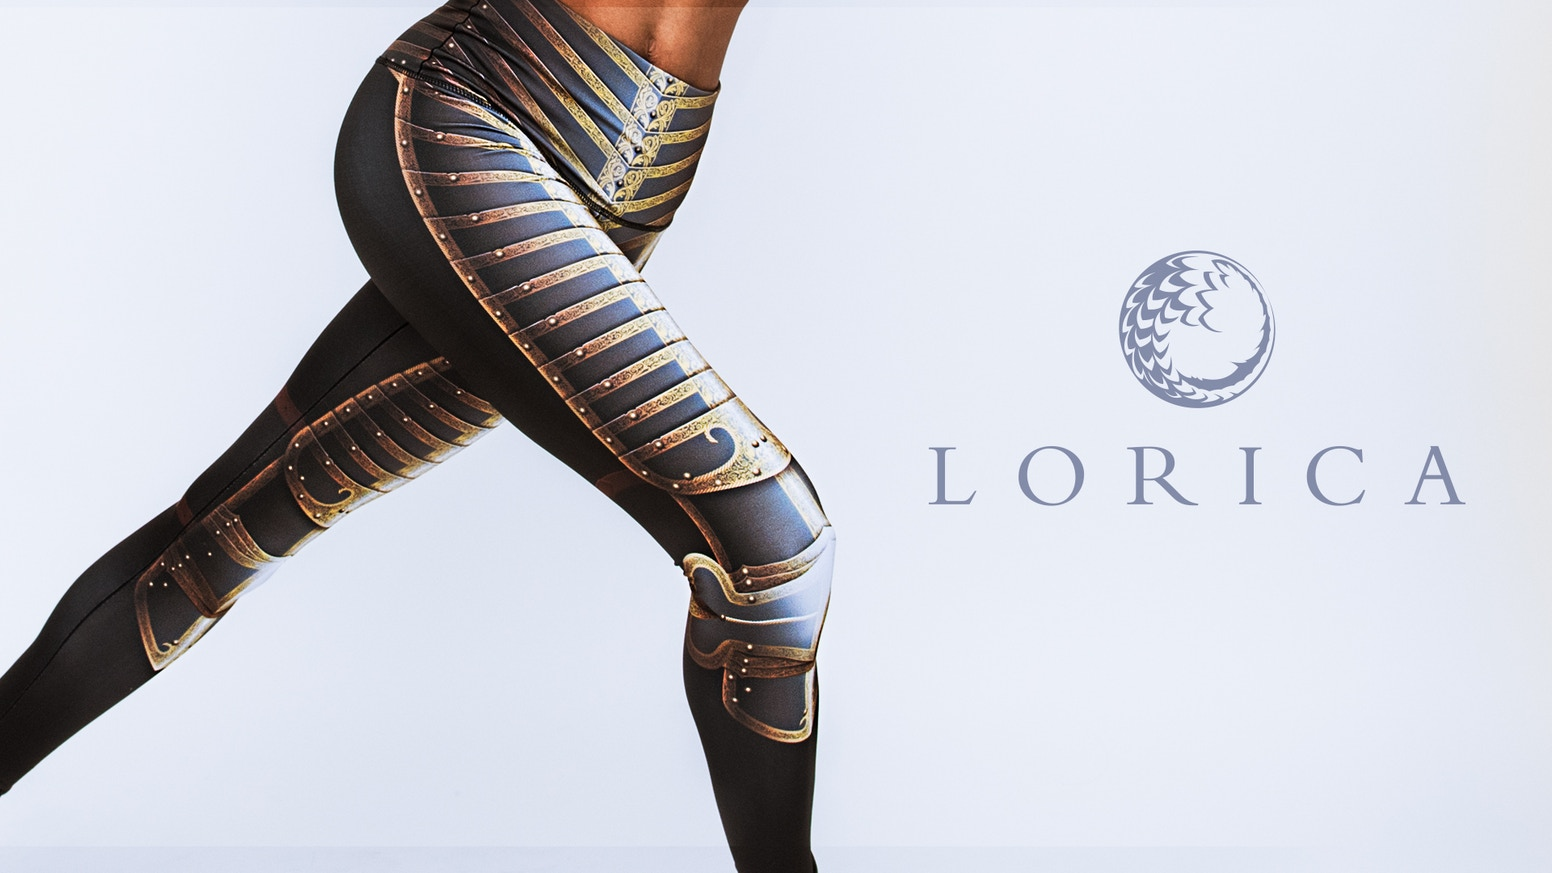 6608e808f57eb Leggings inspired by armor, history, and geekery. Made in the USA from  fabrics